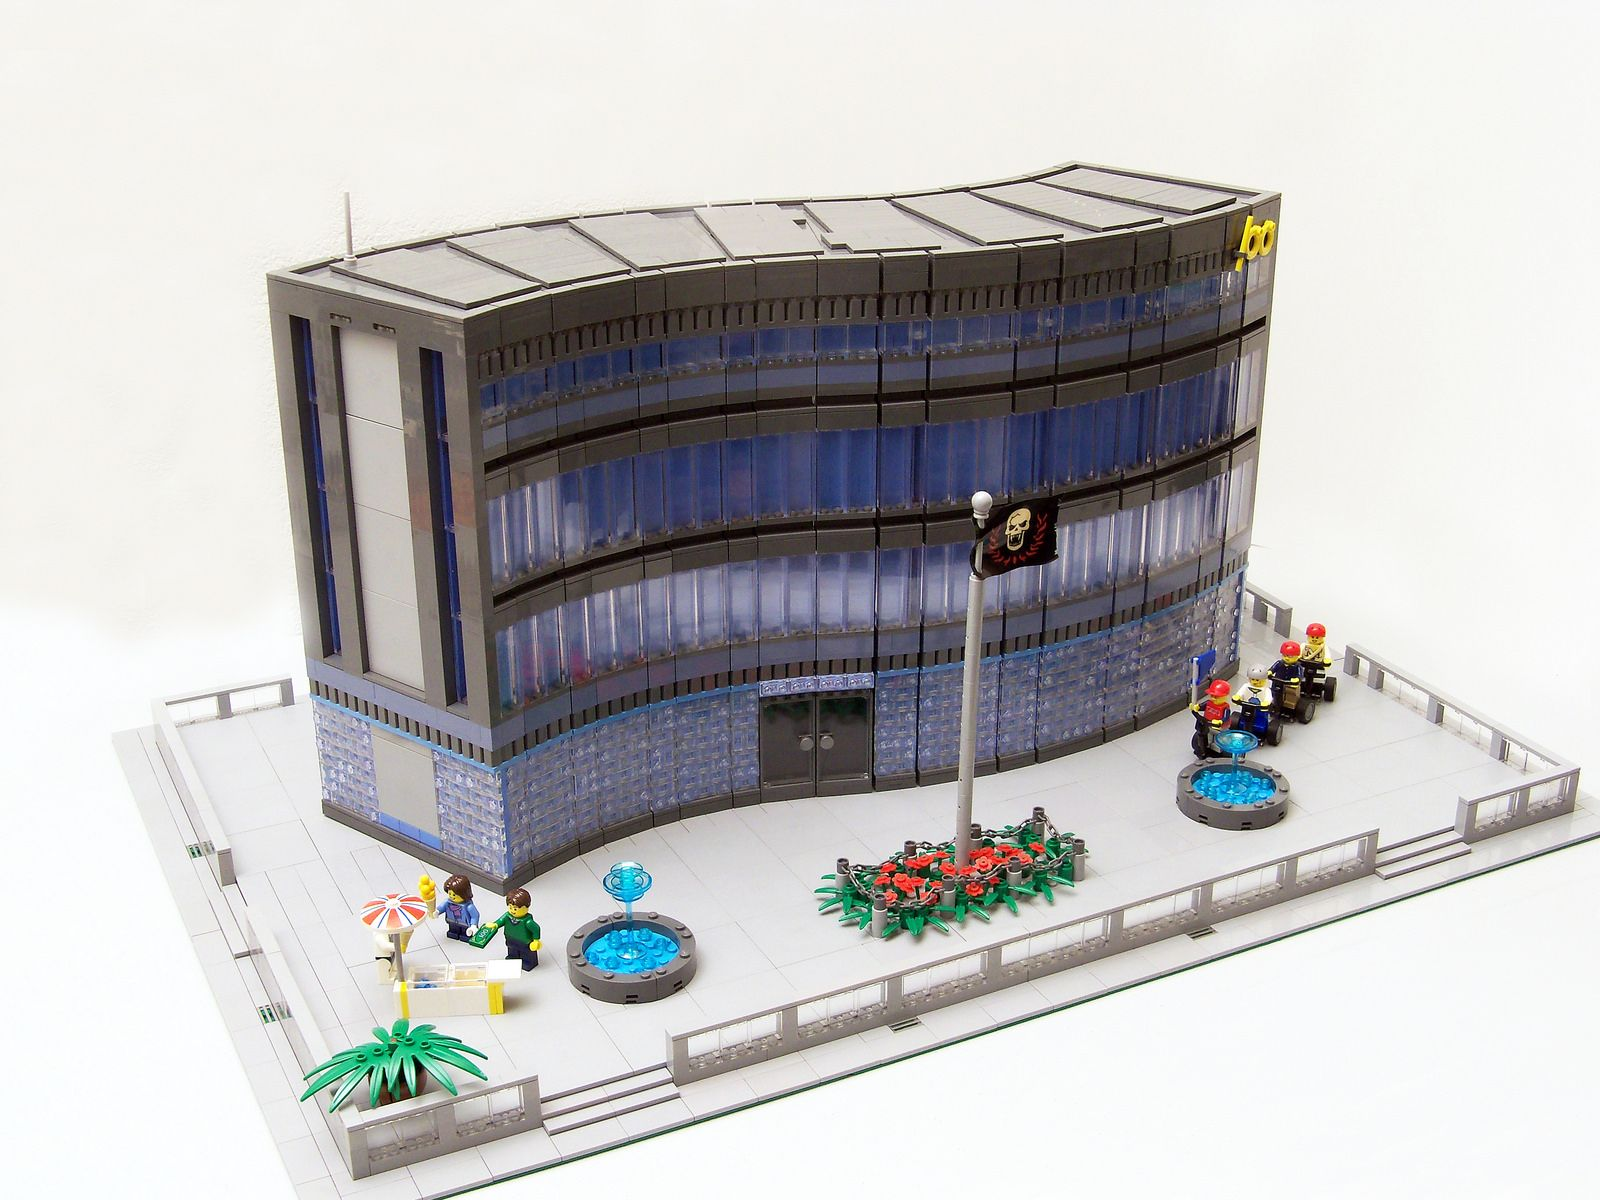 Modern Architecture Lego 87 best lego architecture, modern images on pinterest | lego